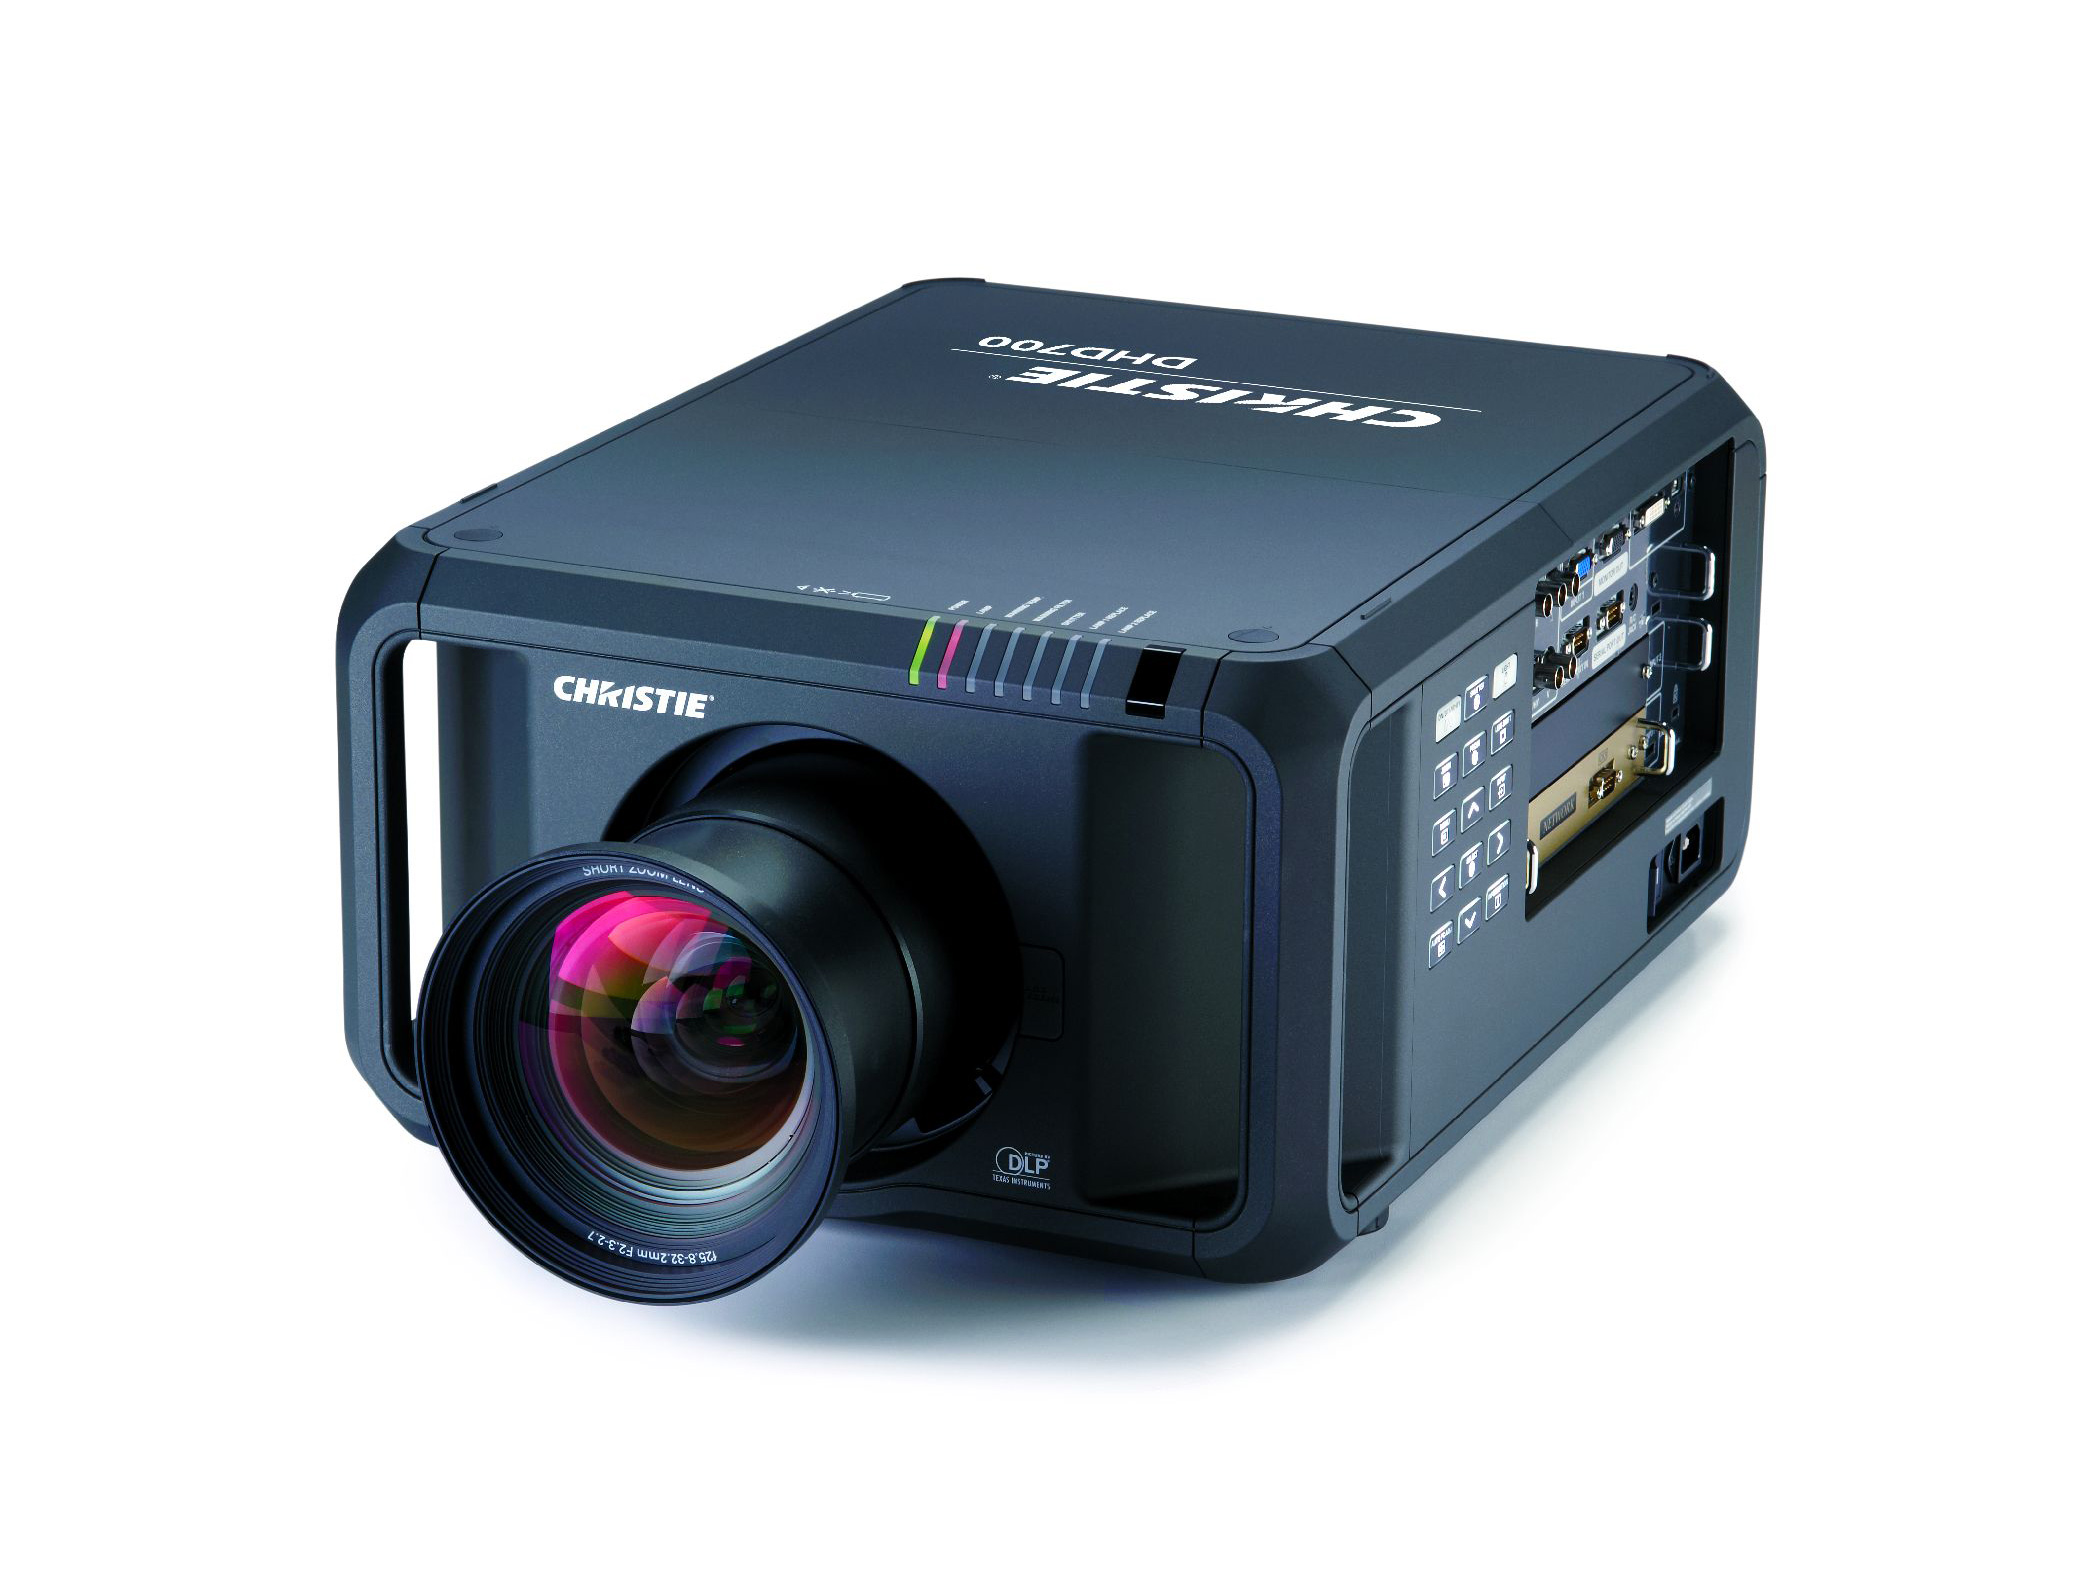 /globalassets/.catalog/products/images/christie-dhd700/gallery/christie-dhd700-1-chip-digital-projector-image7.jpg